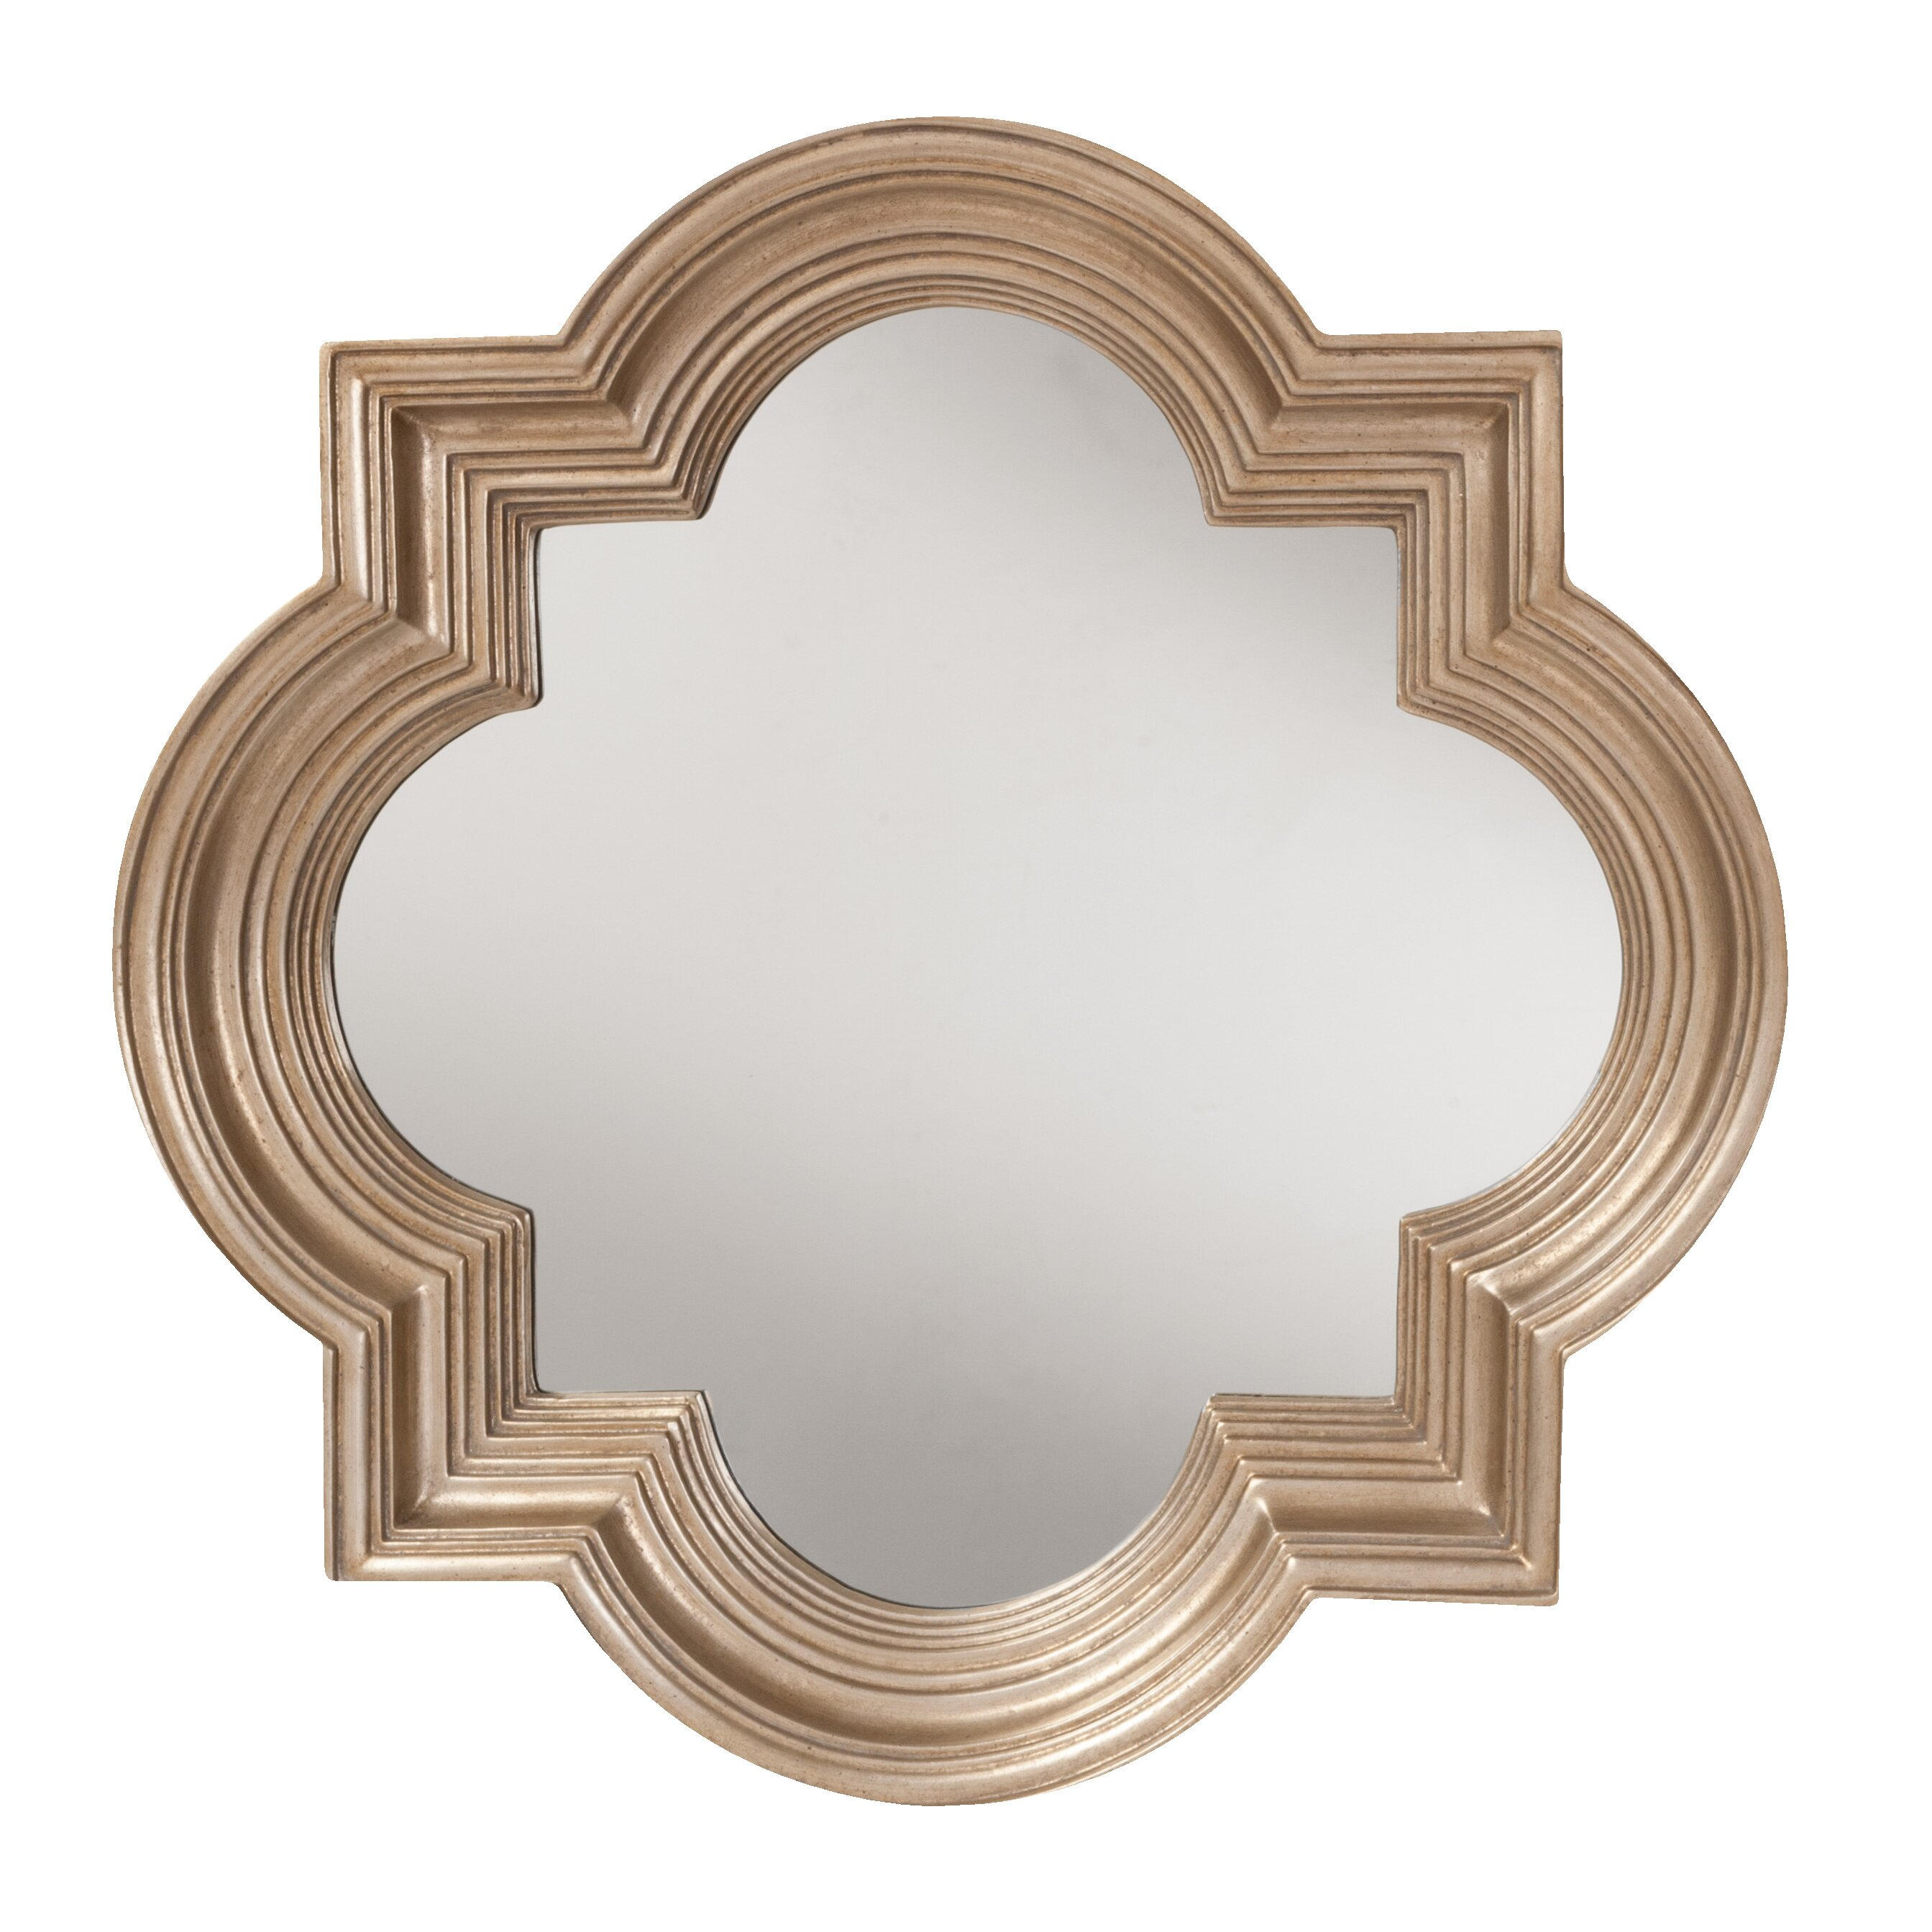 Osp designs gatsby decorative beveled wall mirror for Fancy mirror